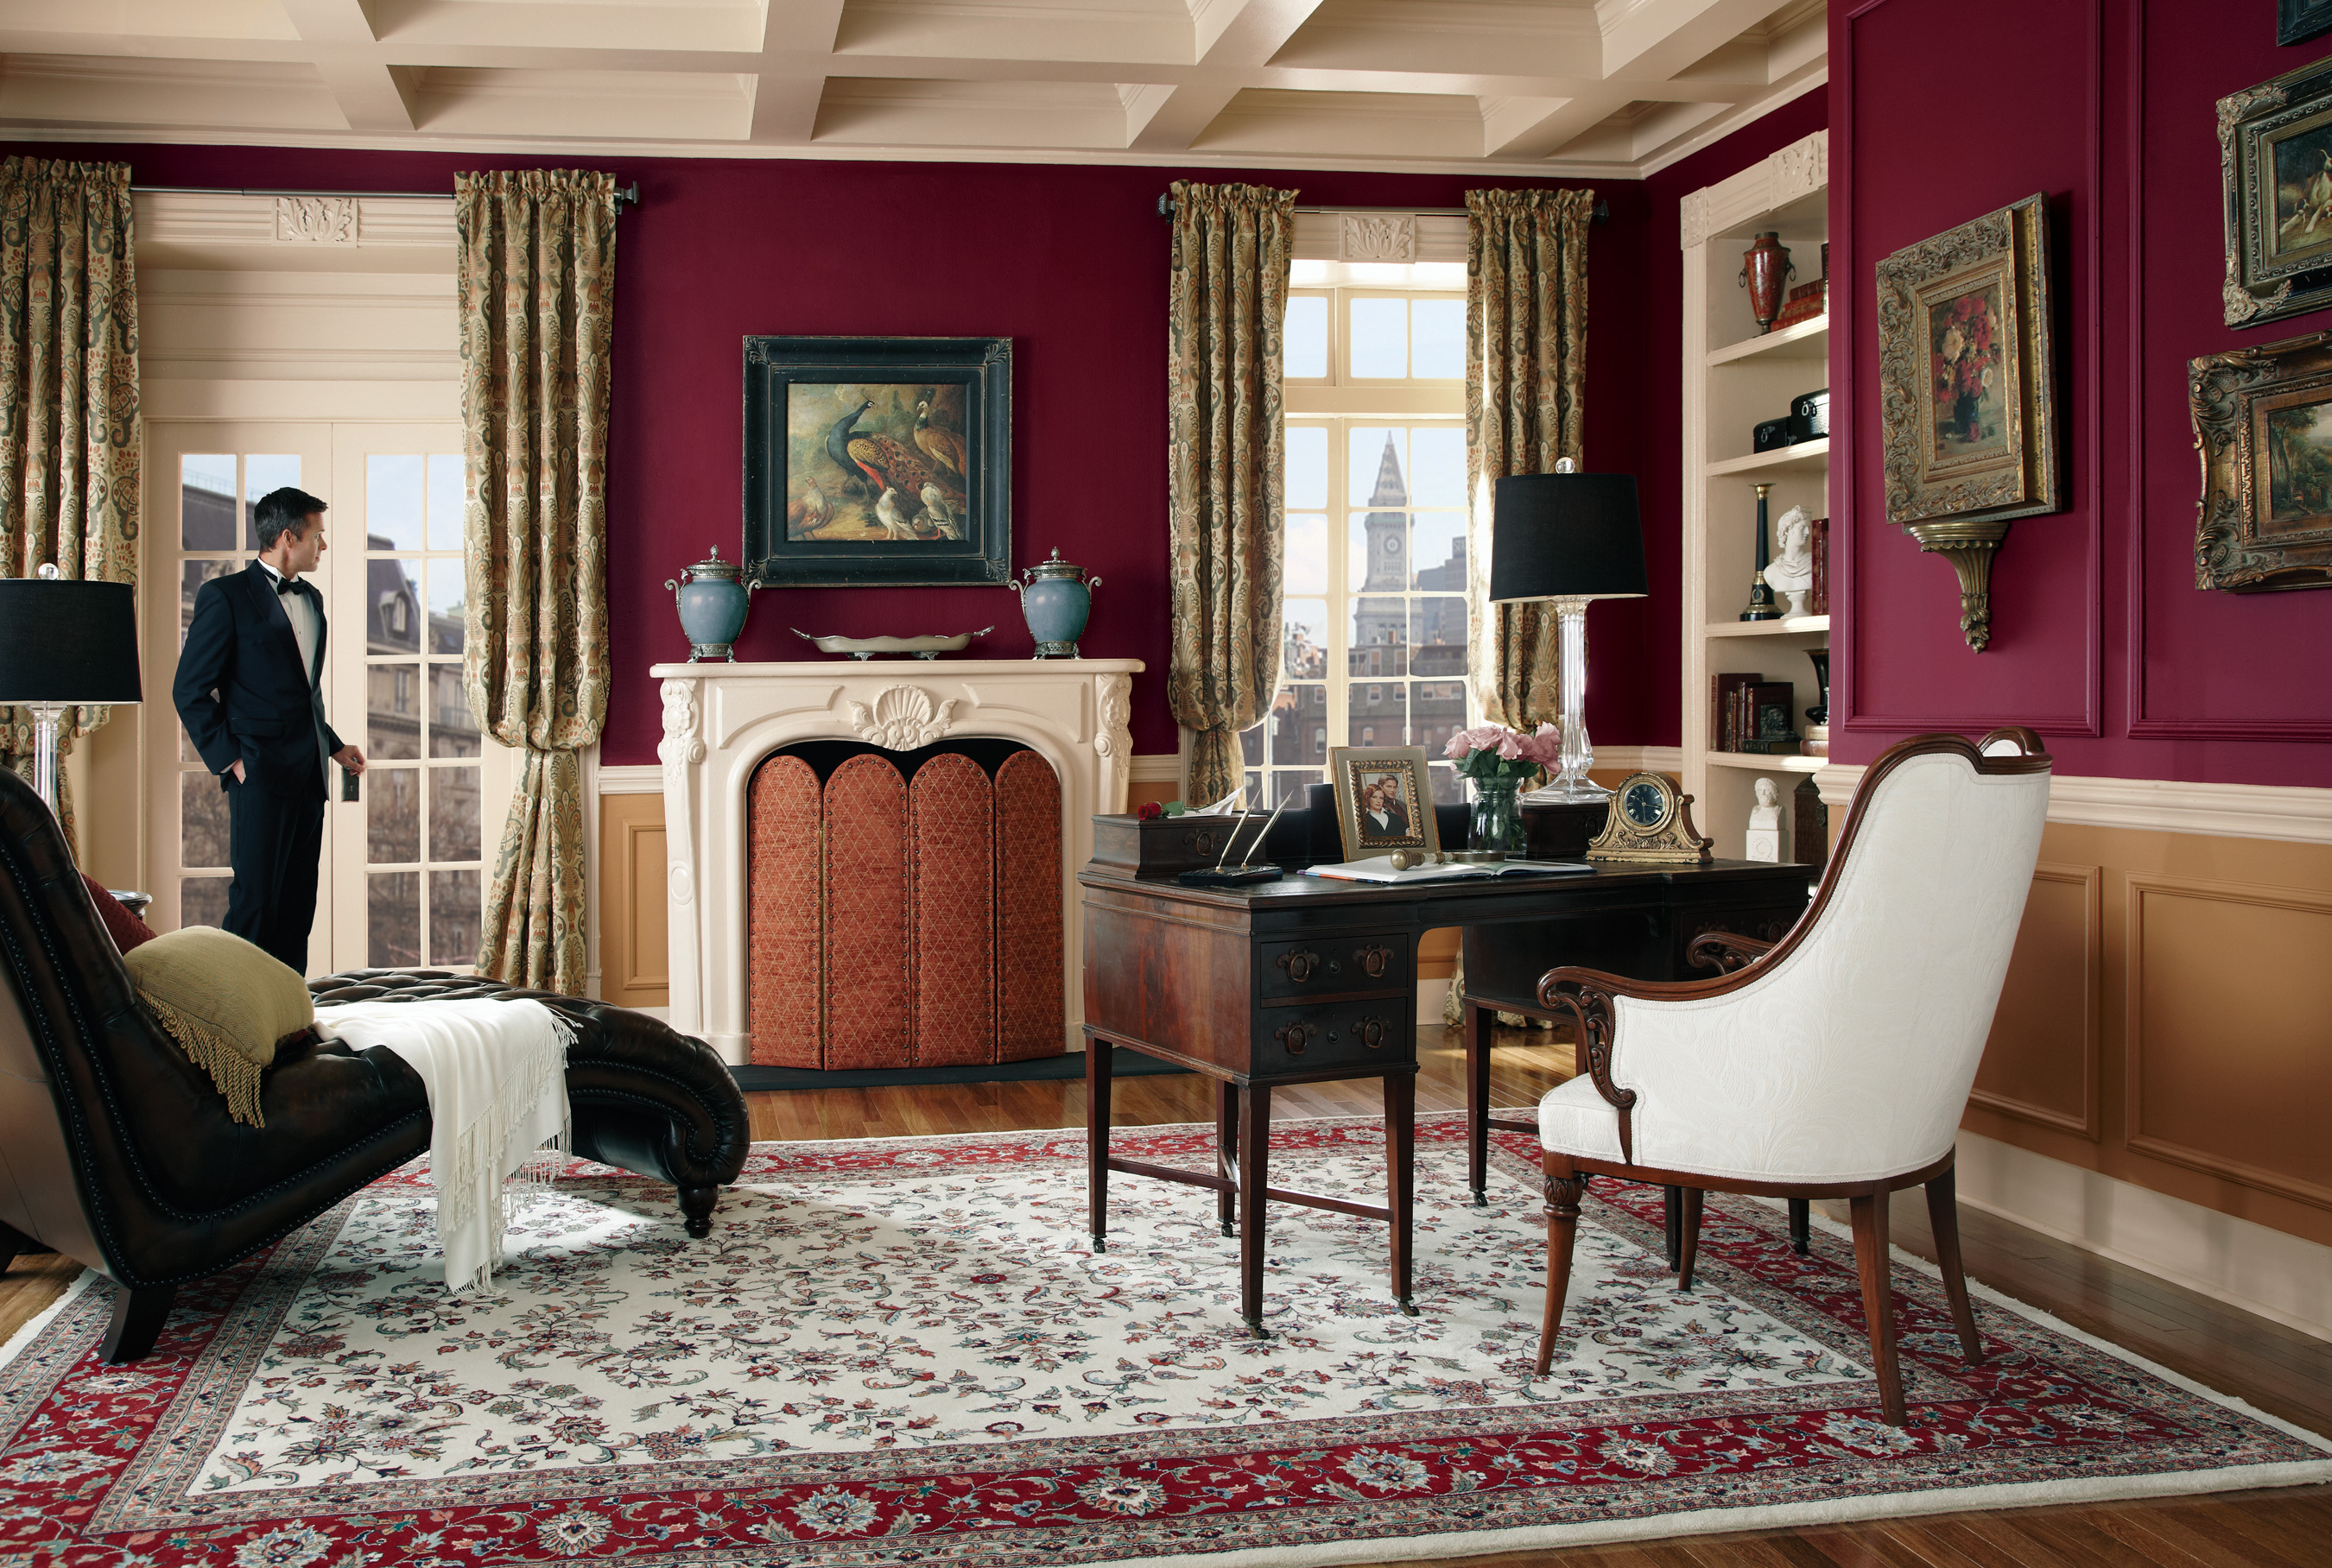 Delightful Behr Paints Introduces 2014 Color Trends Featuring Four Eye Catching Themes  And 20 Unique Hues | Business Wire